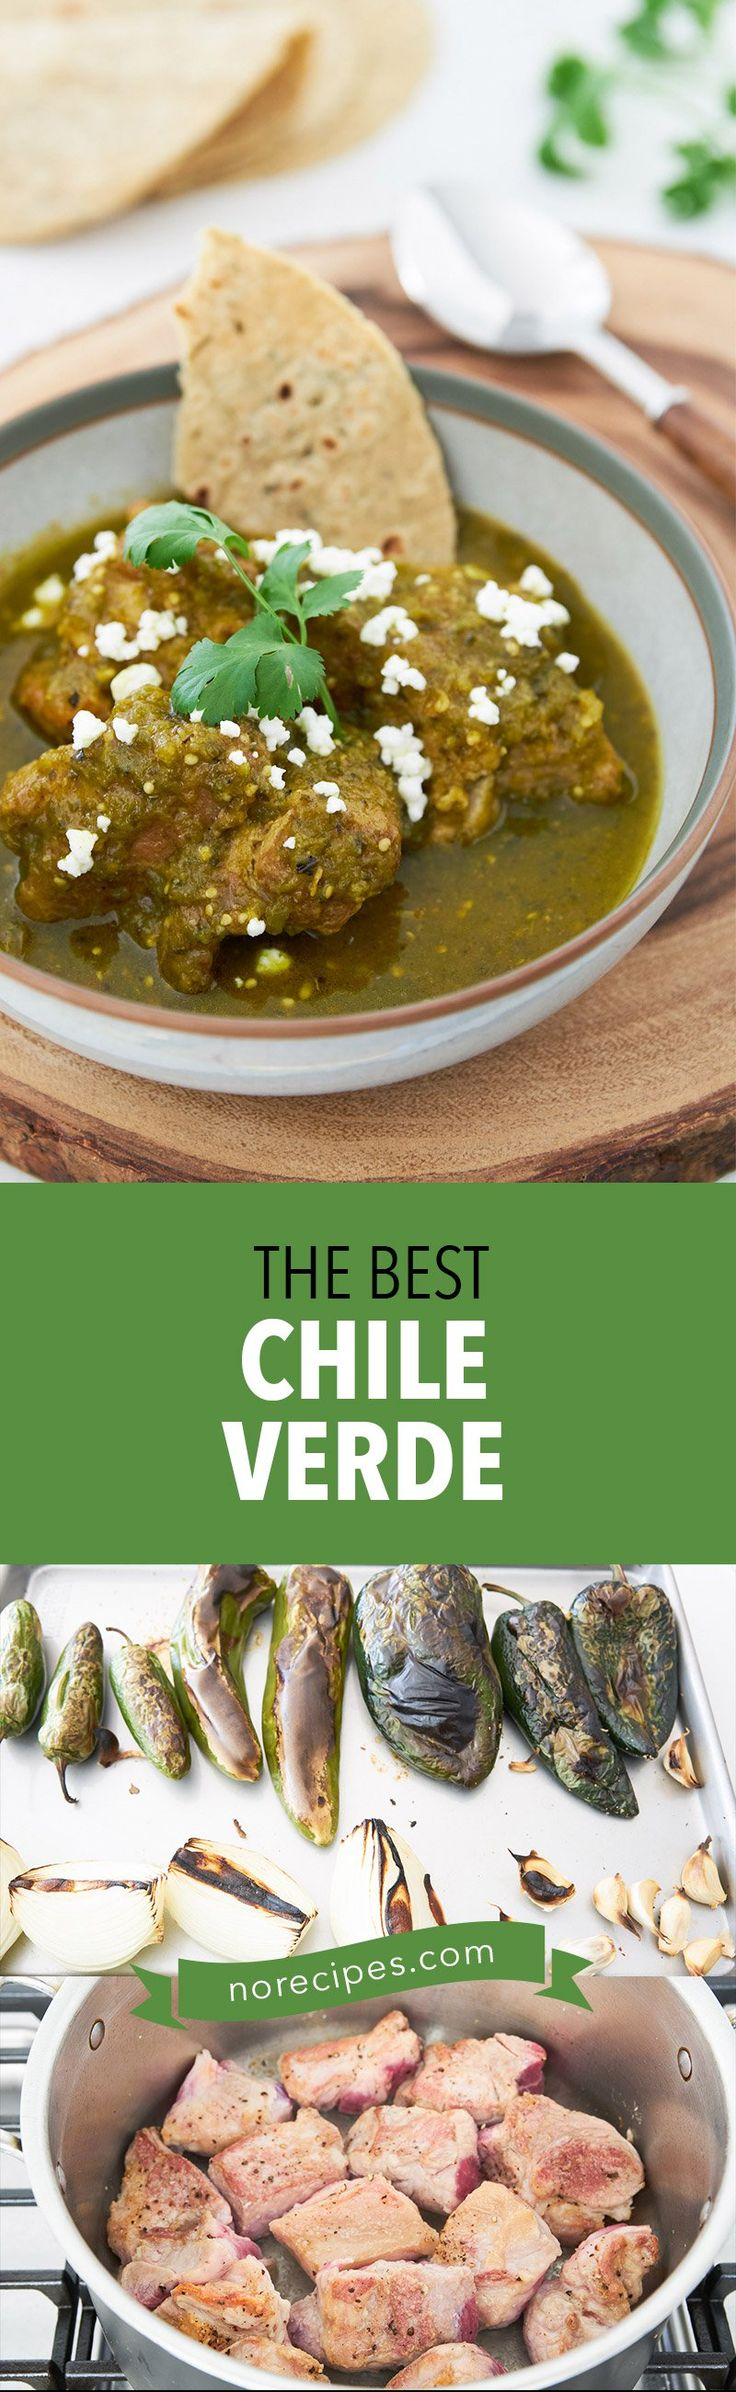 The best Chile Verde recipe with fall-apart tender pork braised in a smokey savory green chili sauce.